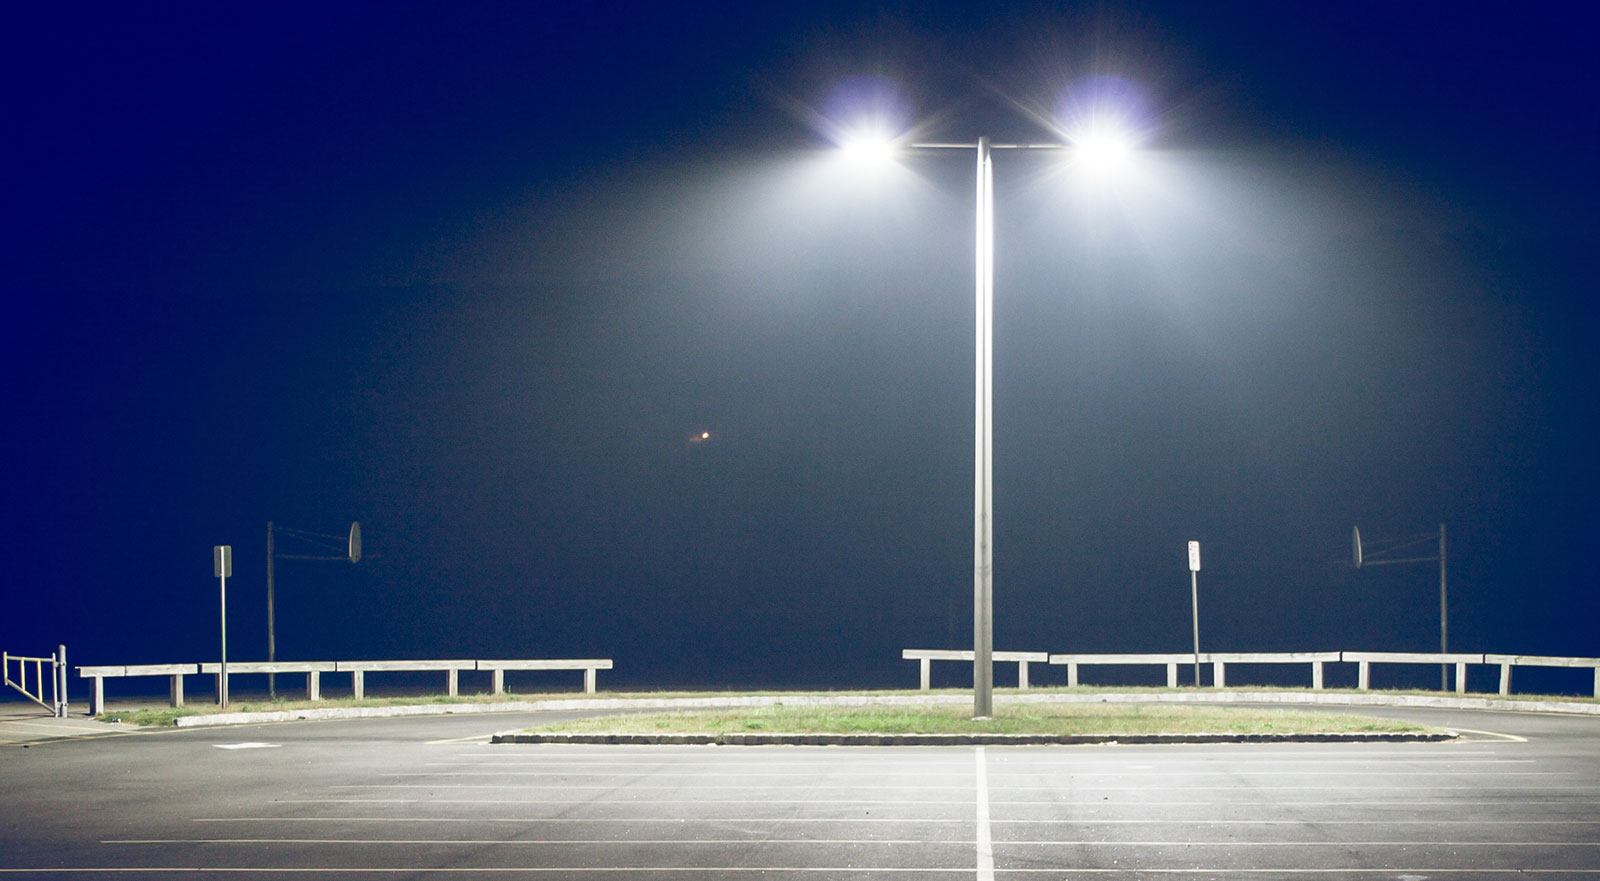 Parking lots and garages need energy efficient commercial LED lighting retrofits to keep costs down. These large areas also require updated lighting ... & Parking Lots and Garage LED Lighting Retrofits in Michigan